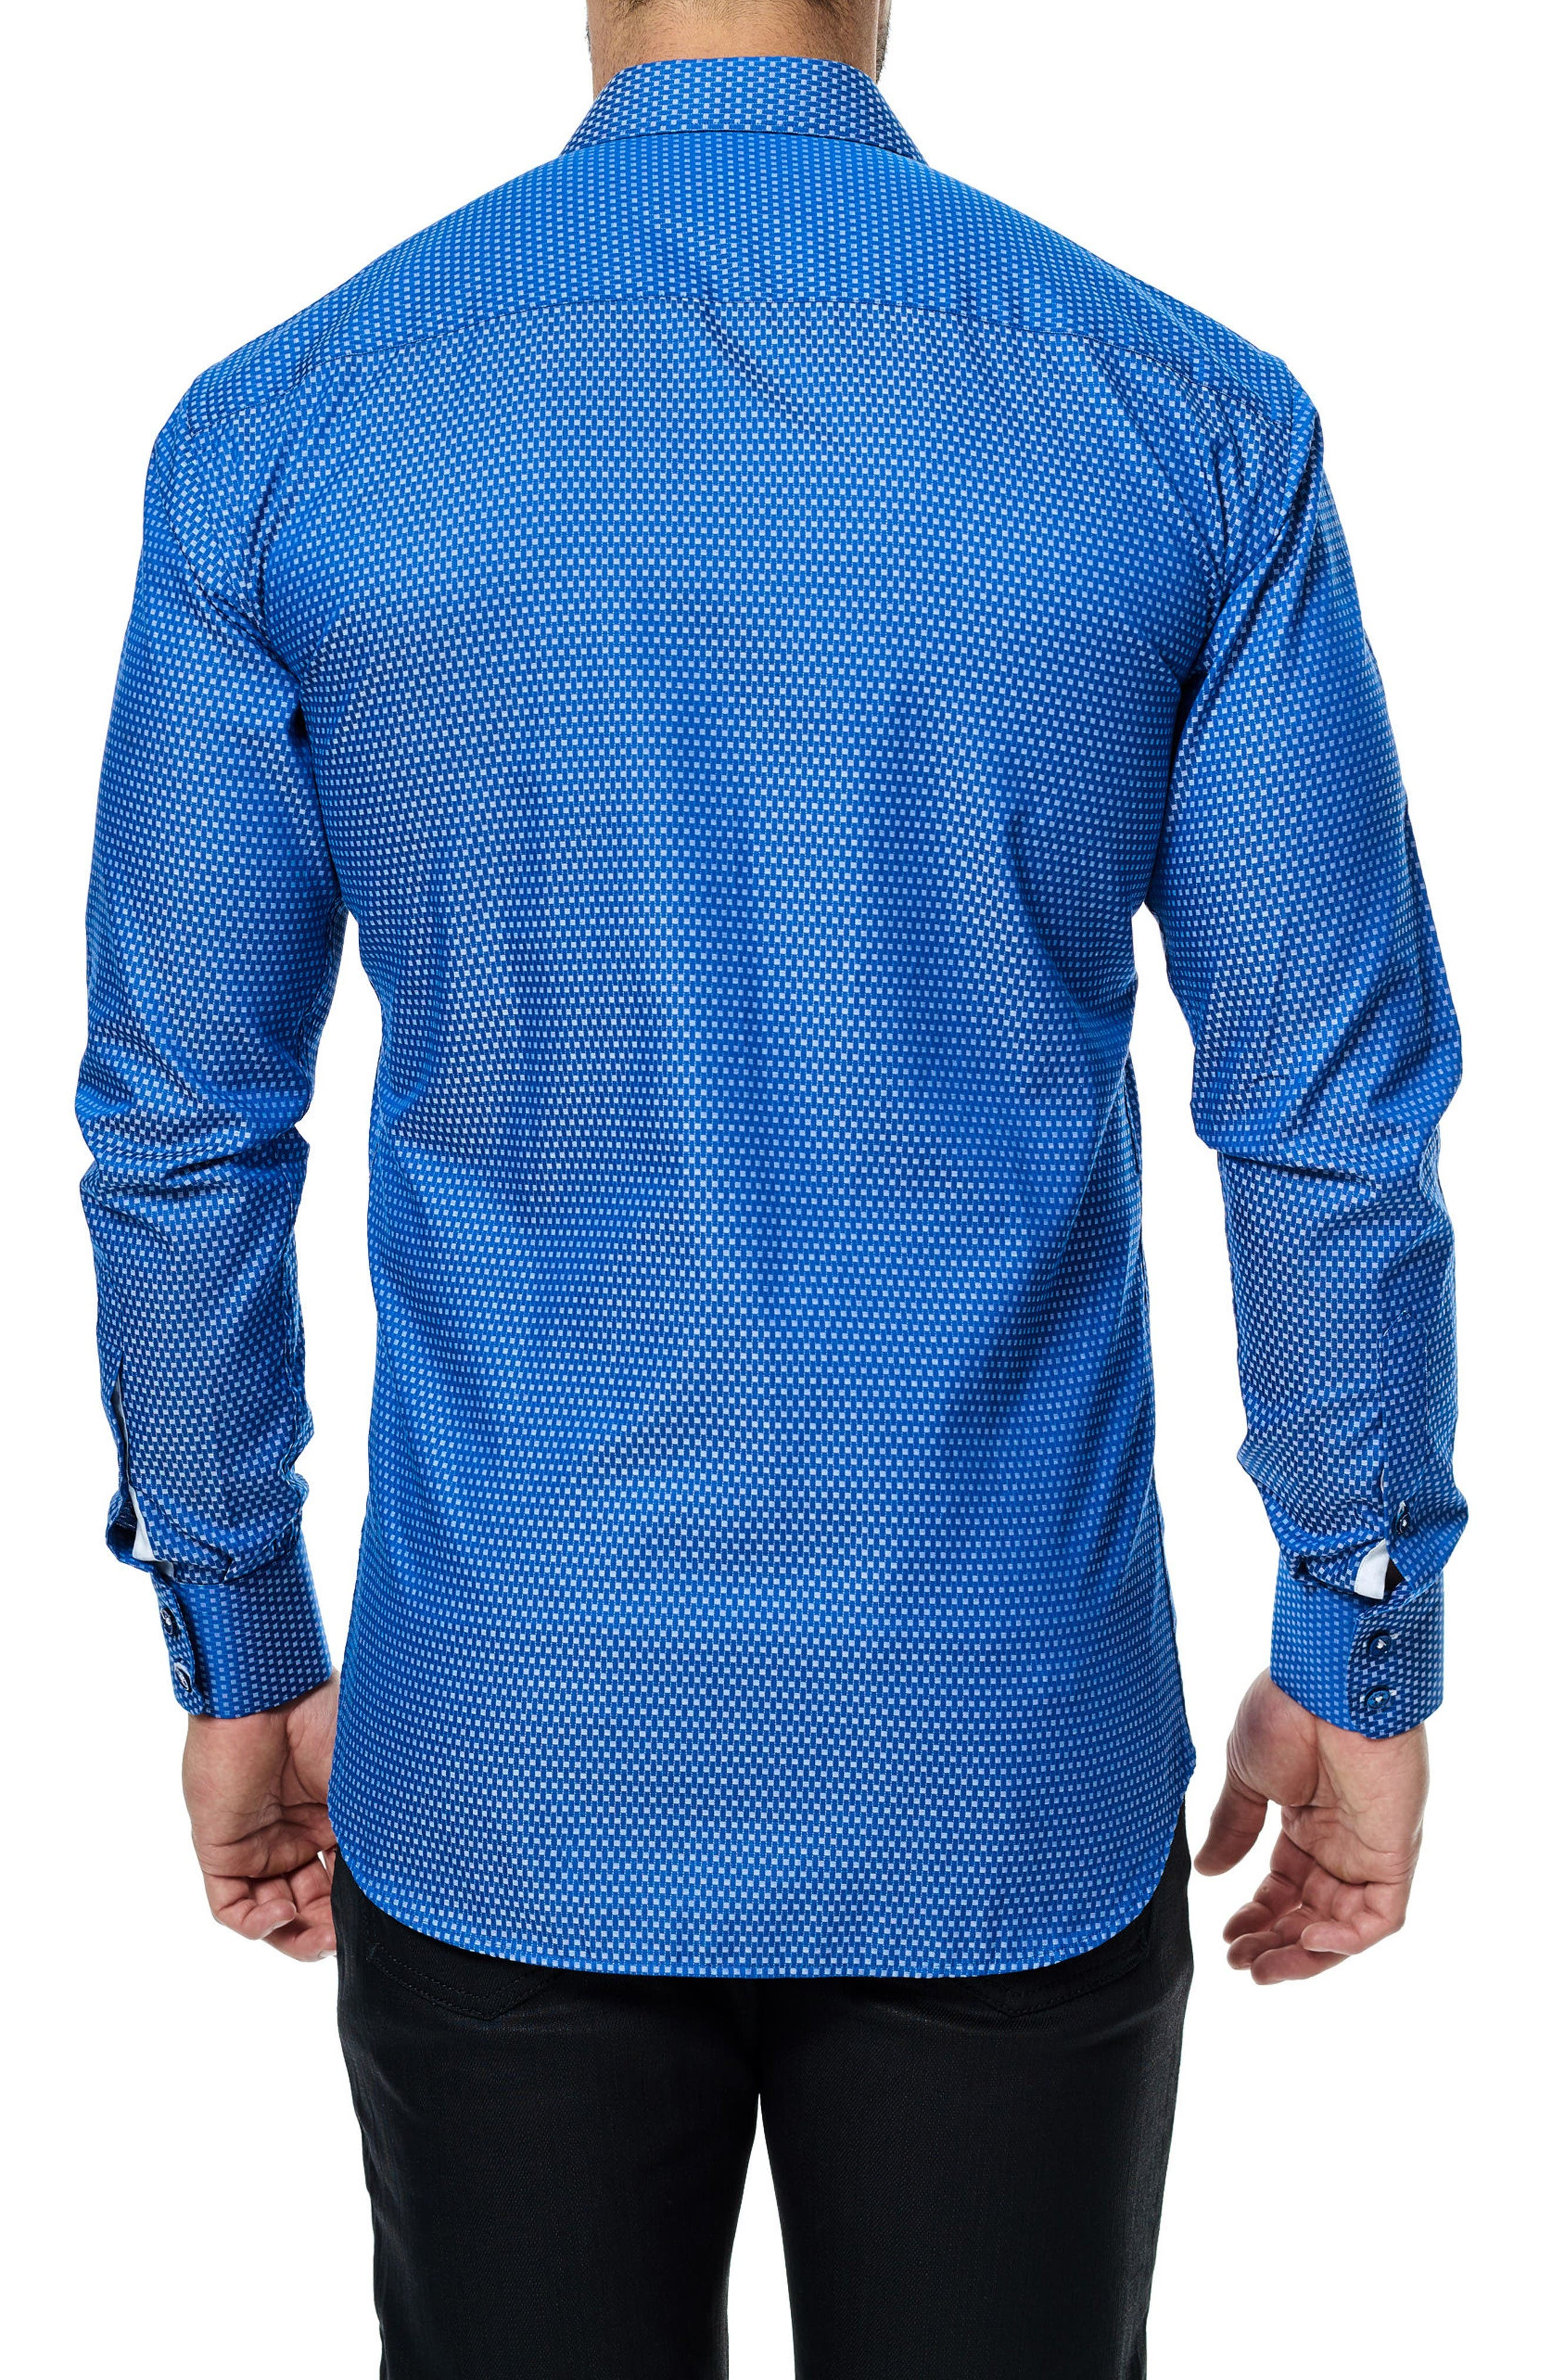 Wall Street Jacquard Sport Shirt,                             Alternate thumbnail 2, color,                             Medium Blue